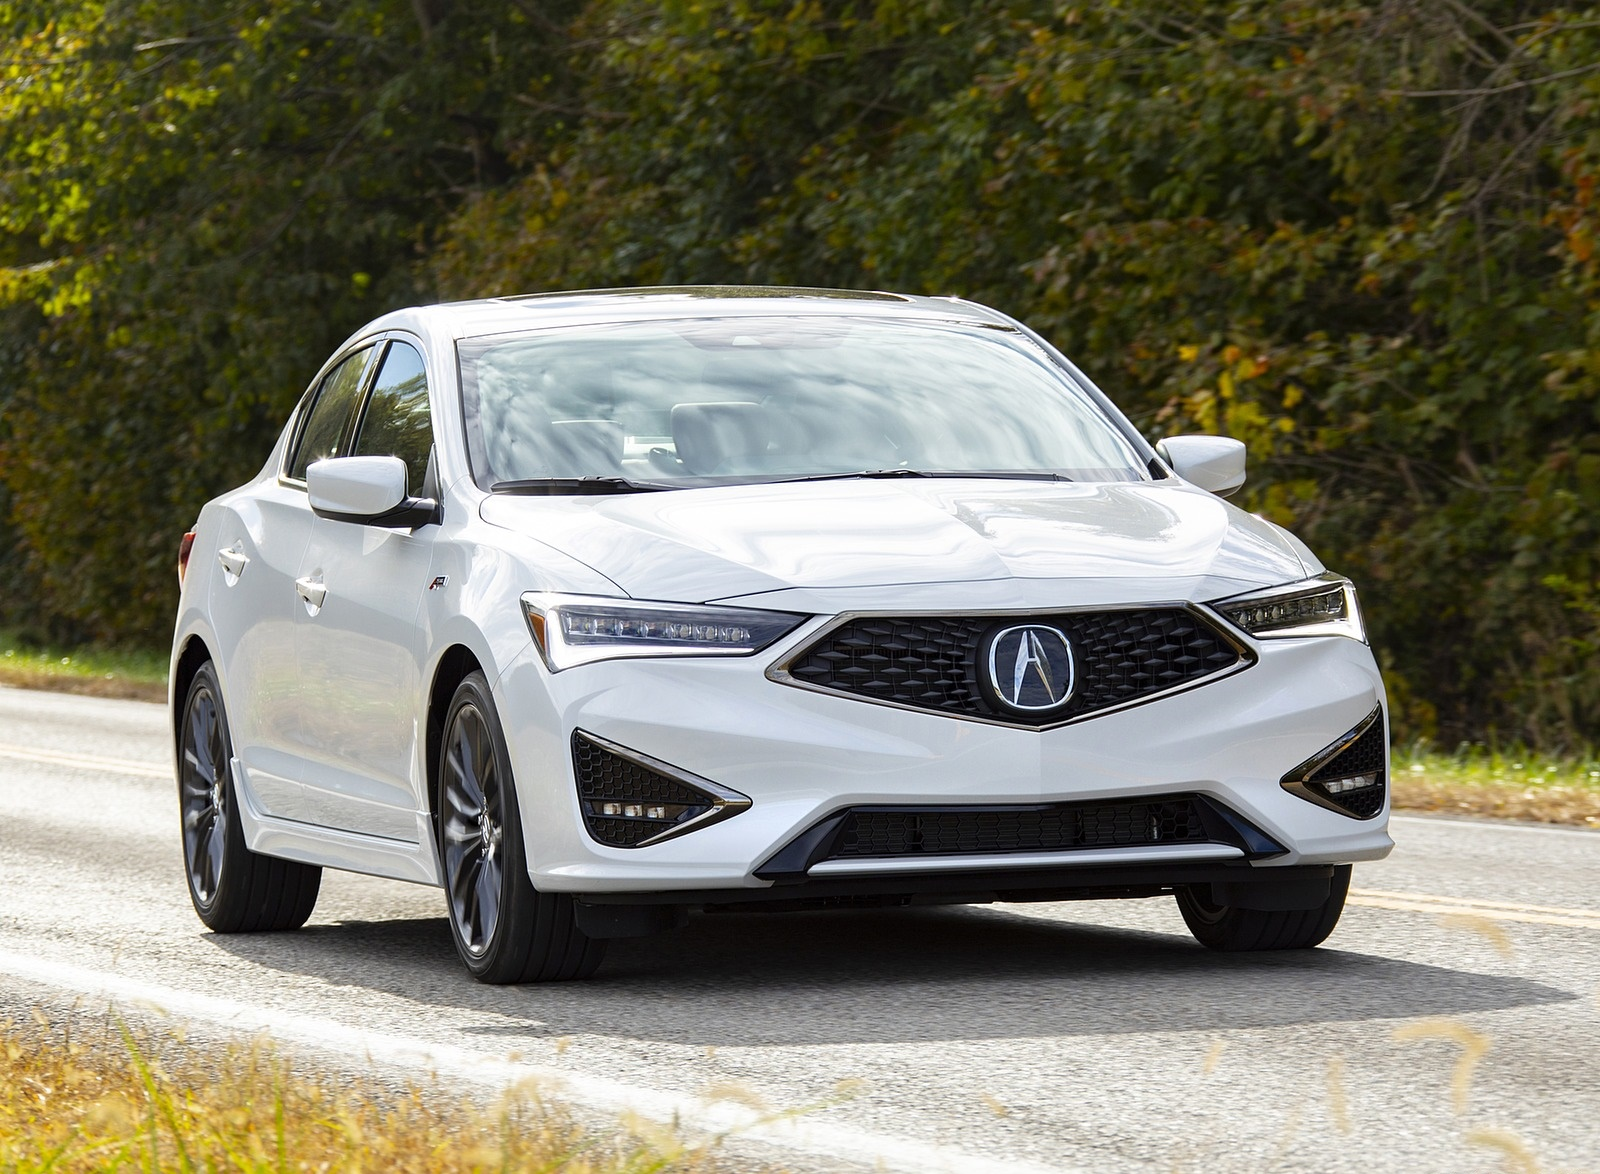 2020 Acura ILX A-Spec Front Wallpapers (10)